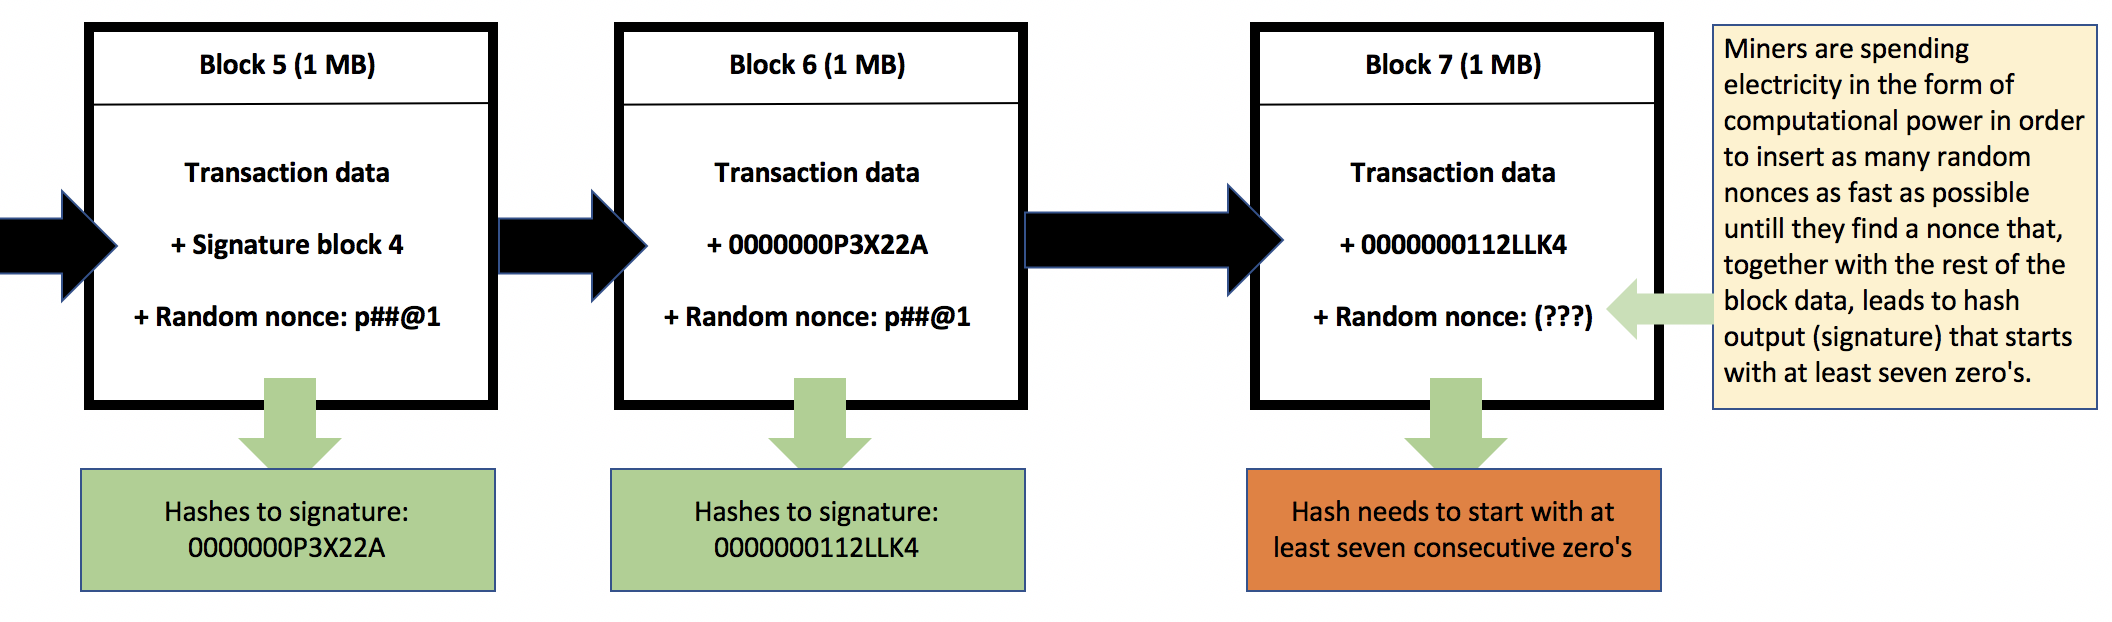 Blockchain: how mining works and transactions are processed